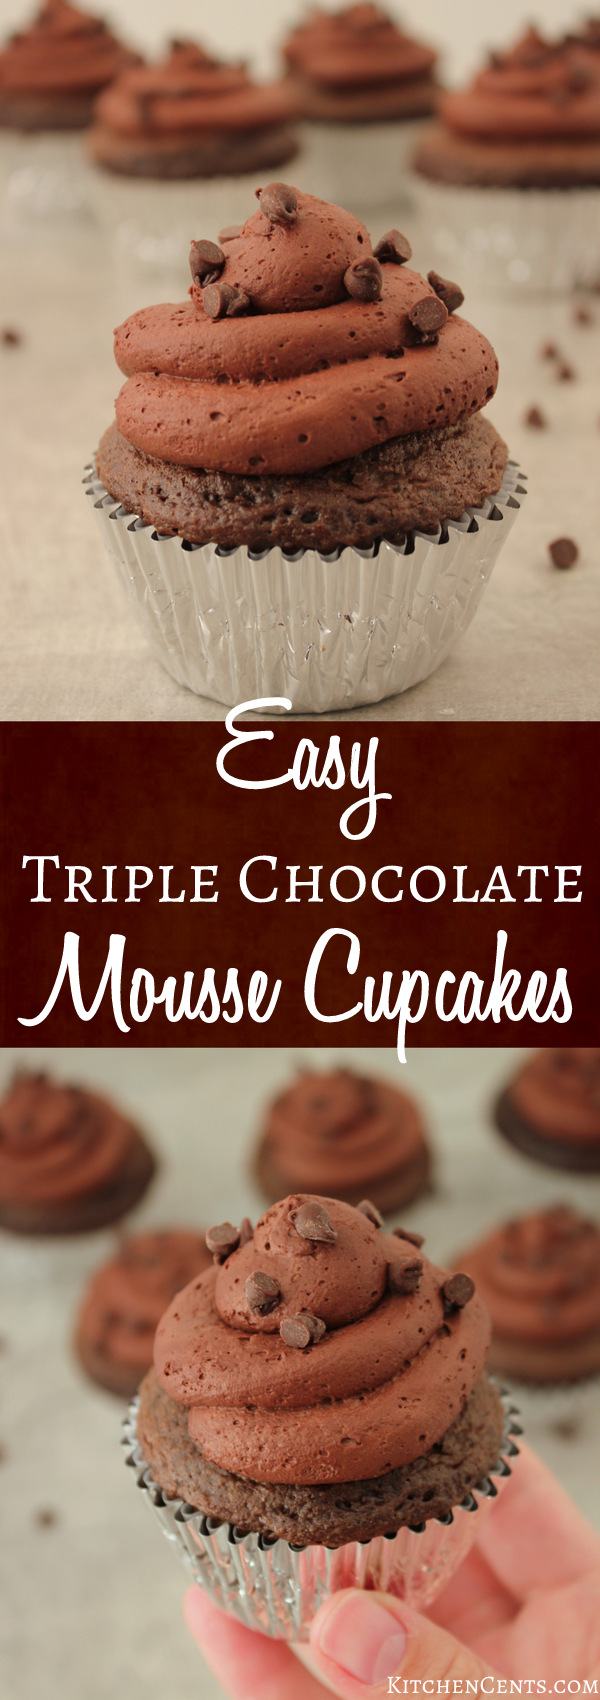 Easy Triple Chocolate Mousse Cupcakes | KitchenCents.com